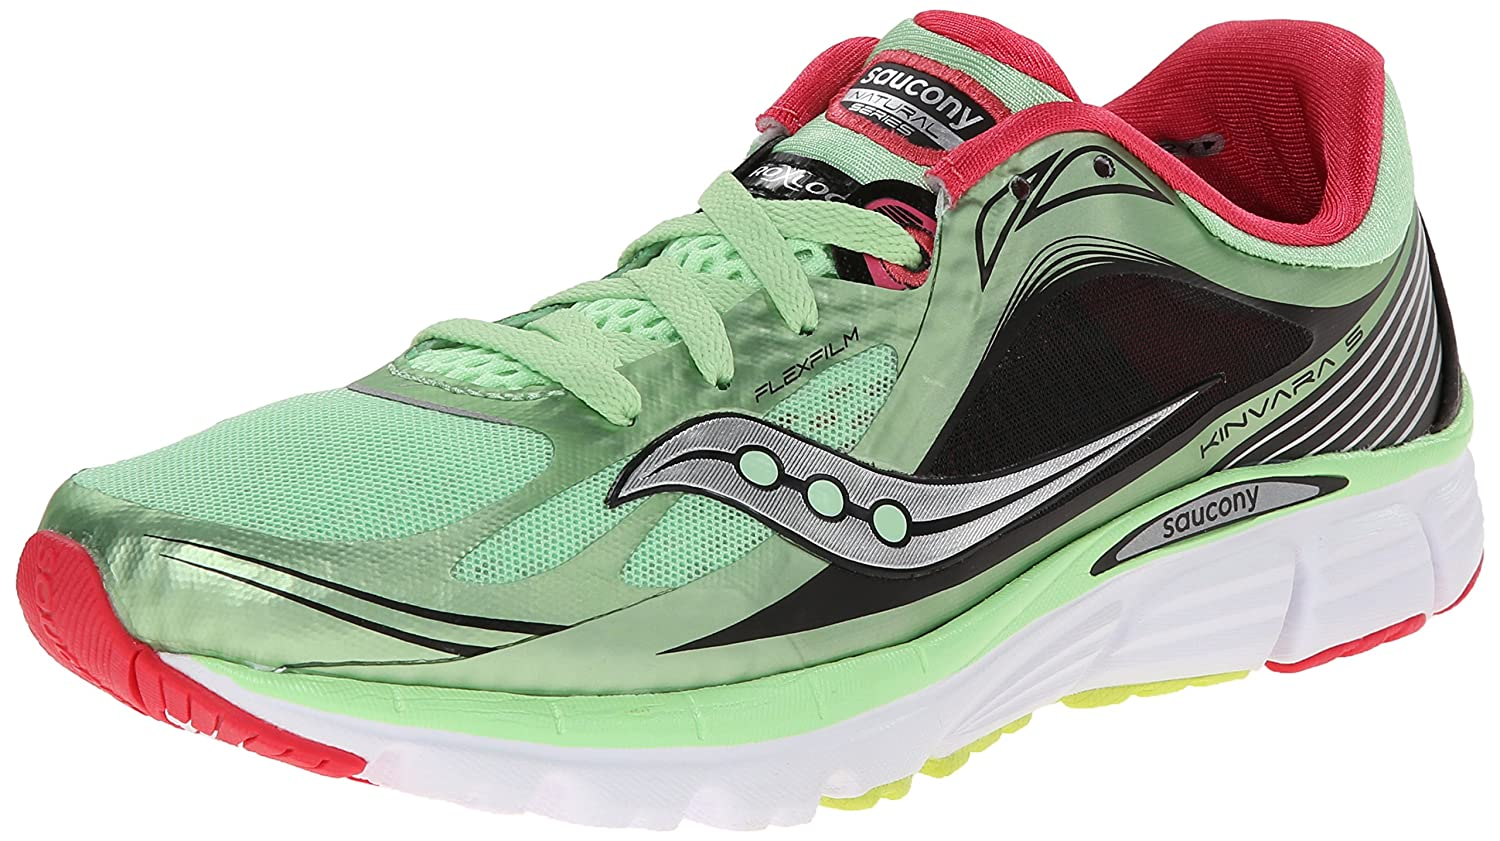 Saucony Women's Kinvara 5 Running Shoe B00KPU0H3K 10.5 B(M) US|Mint/Cherry